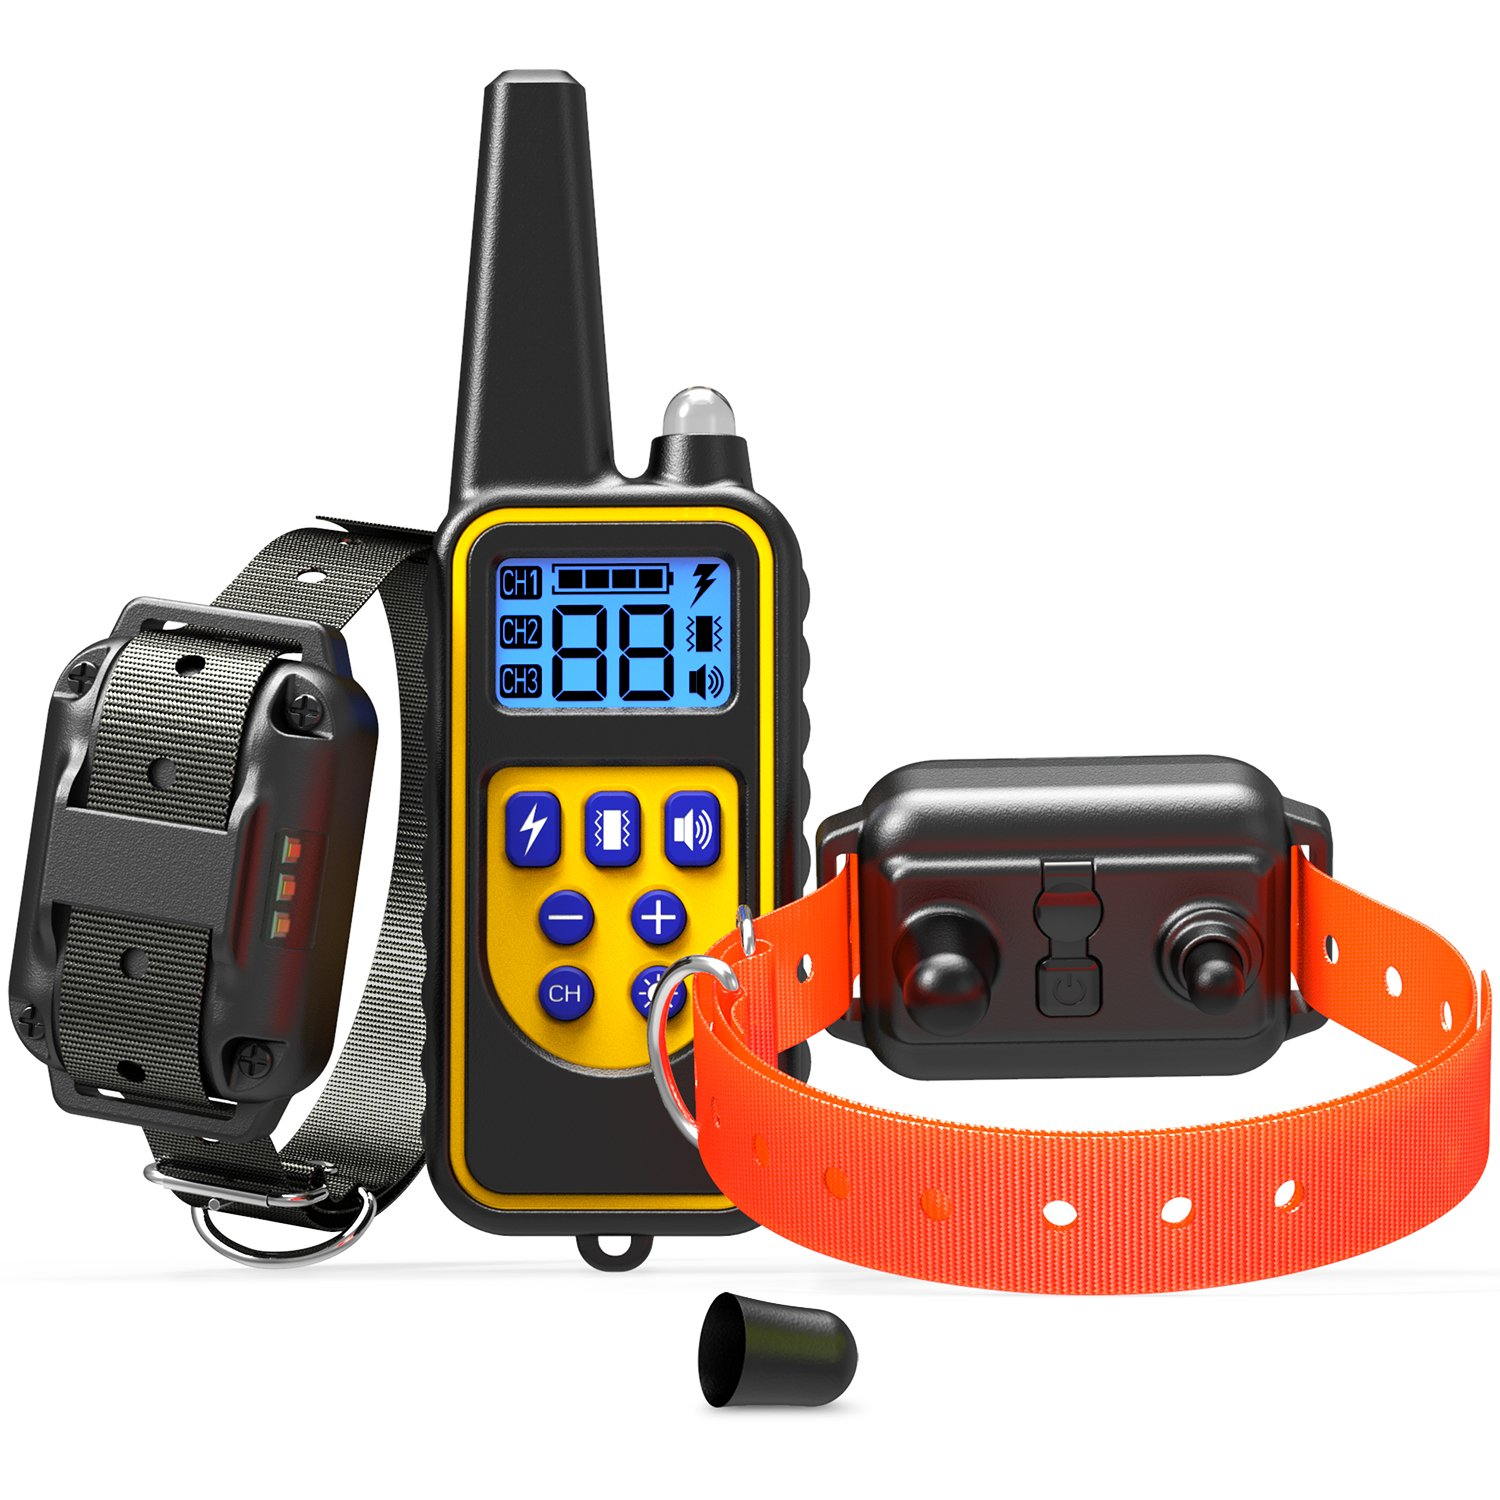 Dog Training Collars, Veckle Dog Shock Collar Waterproof Dog Electronic Collar Remote Training with LED Beep Vibration Shock Collar for Large and Medium Dogs Training for 2 Dogs with Remote